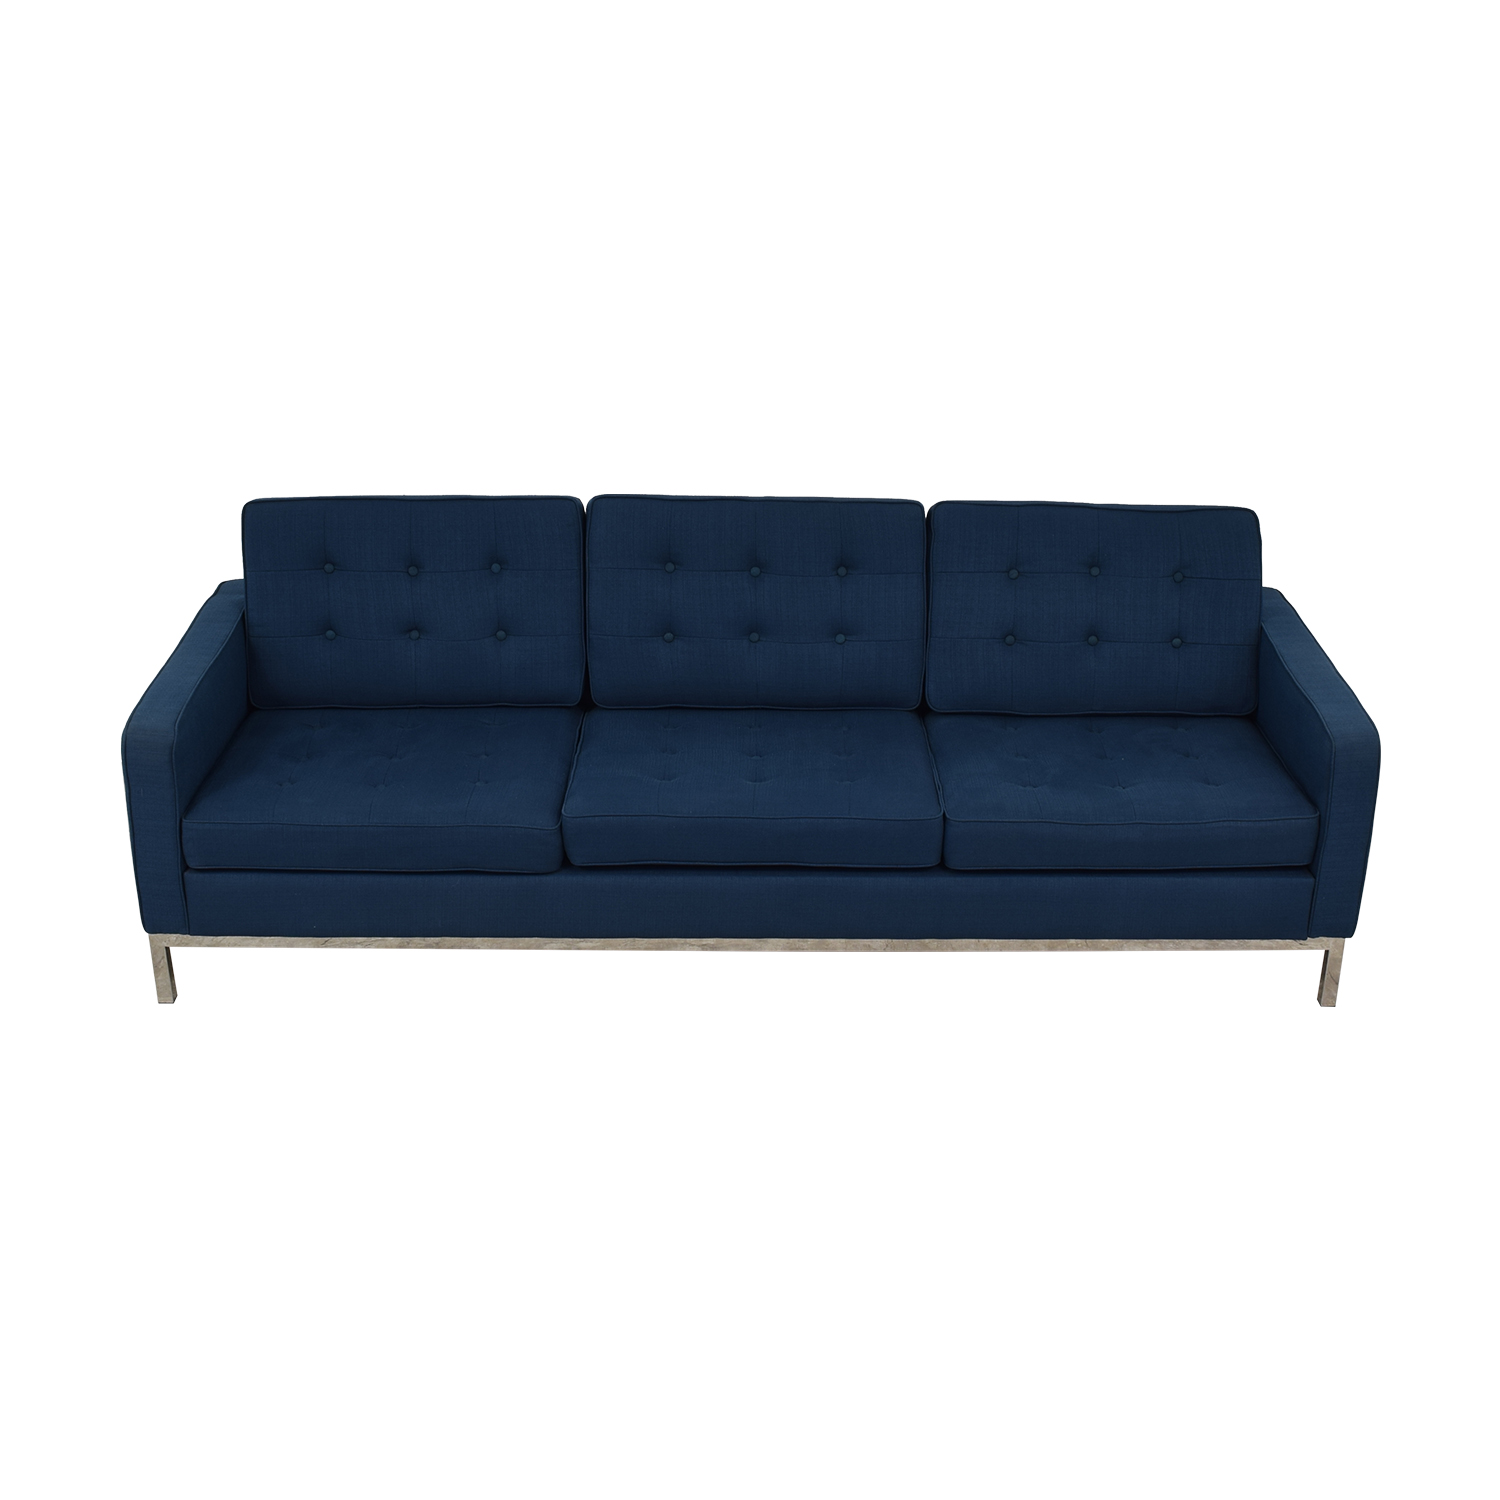 Modway Modway Loft Blue Tufted Three-Cushion Sofa coupon